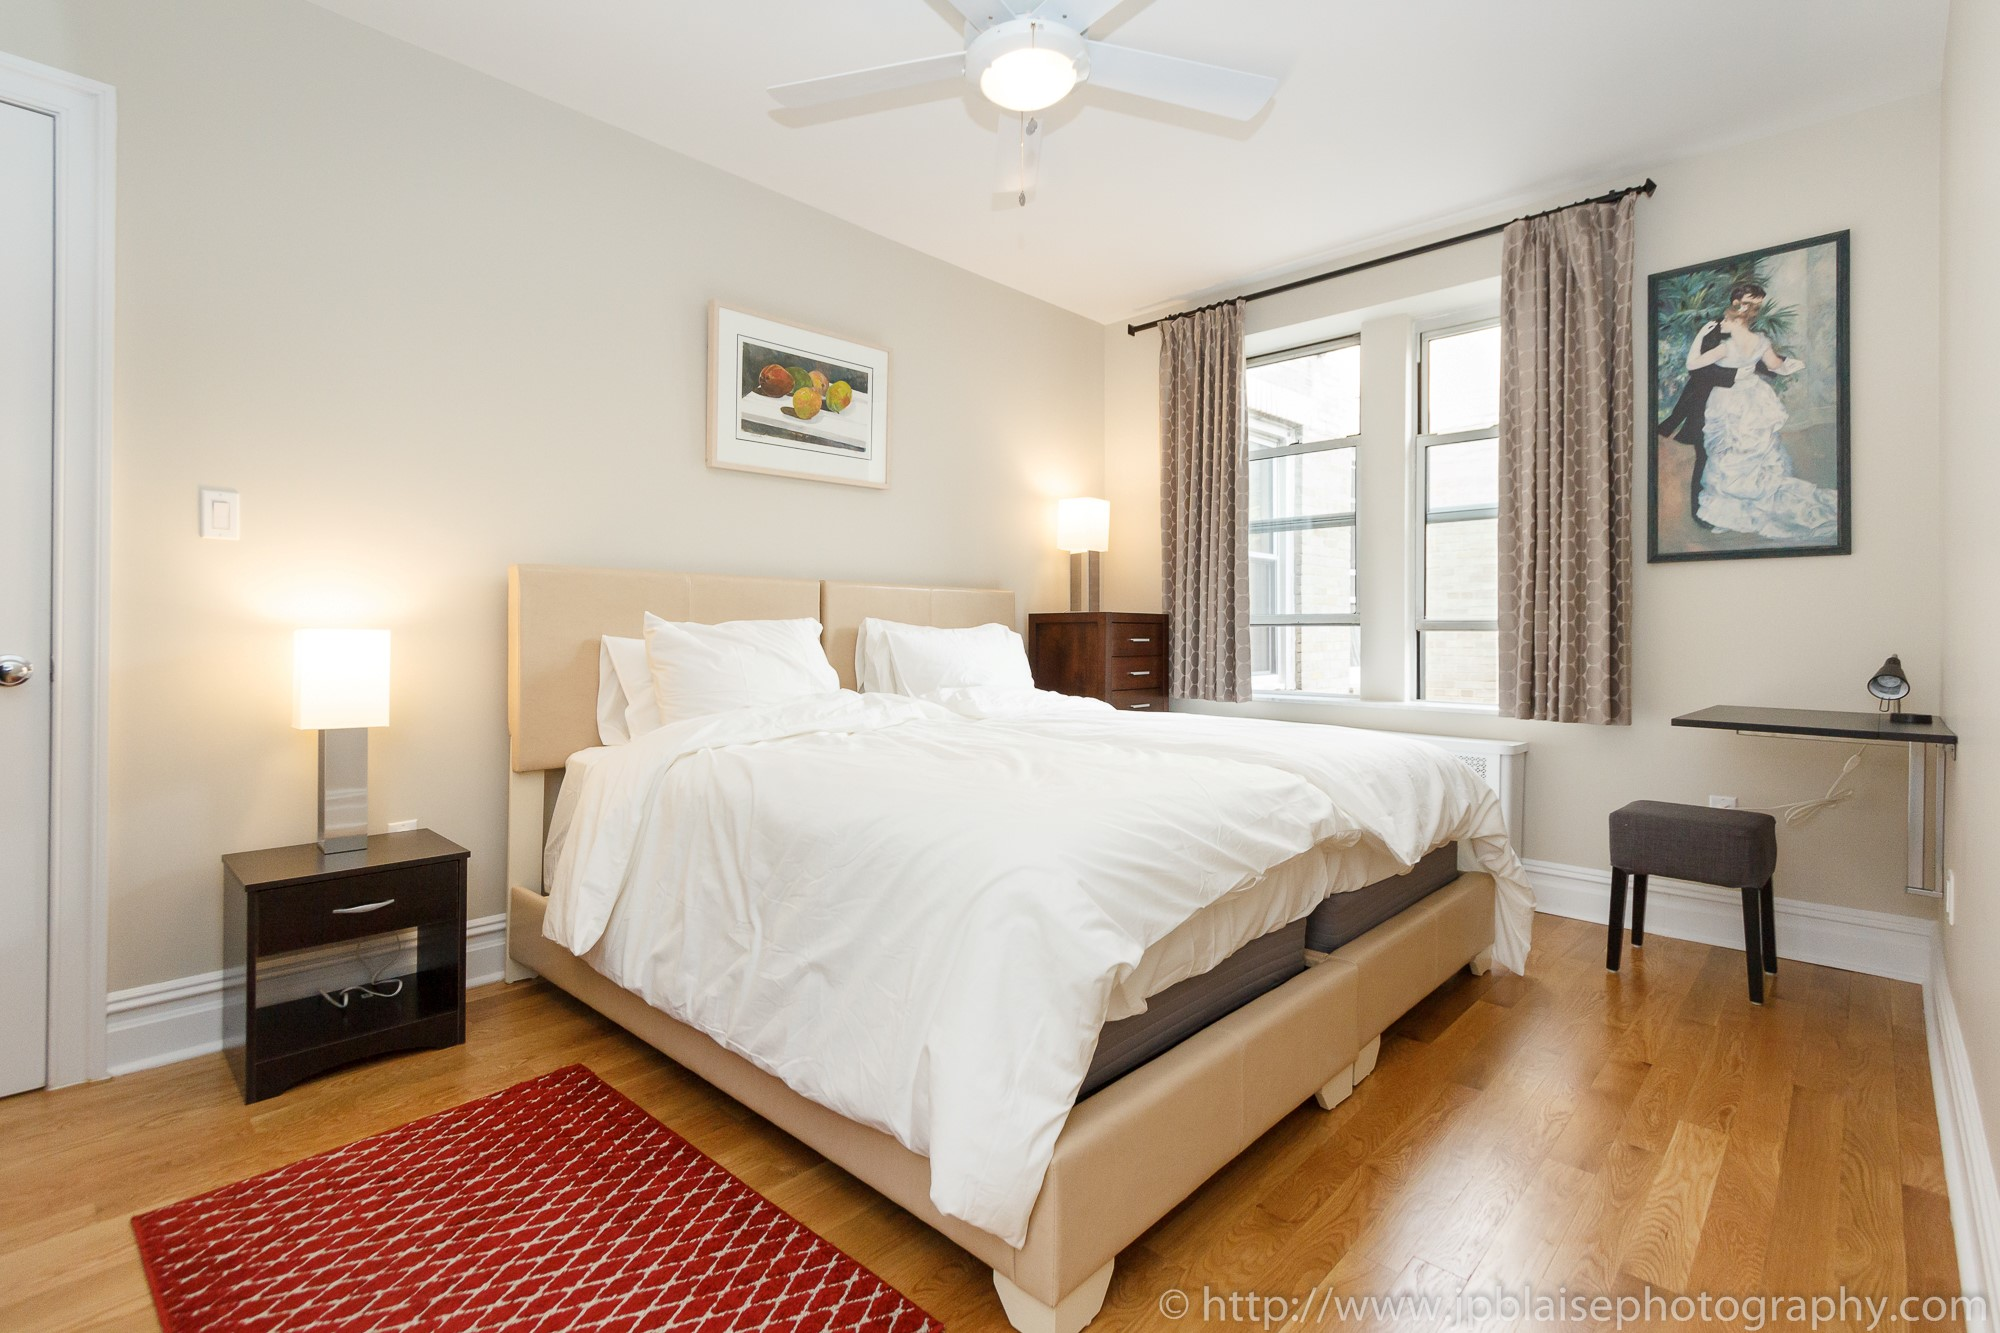 Apartment photographer nyc one bedroom apartment in washington heights manhattan new york bedroom